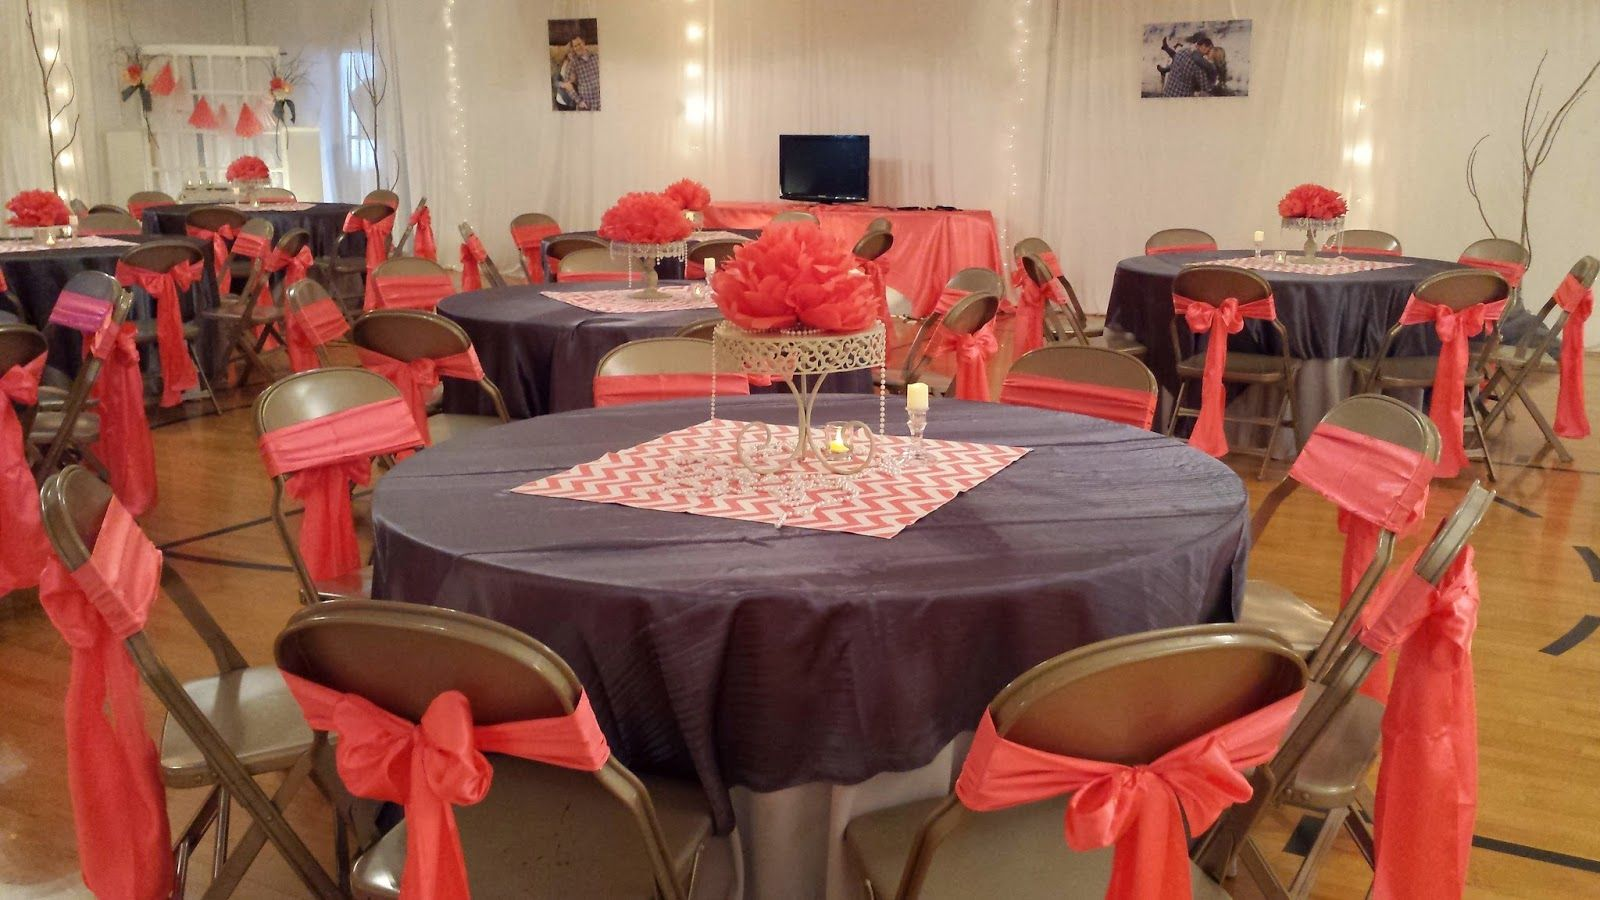 Cheap wedding reception images coral gray cute for Cheap decorating ideas for wedding reception tables